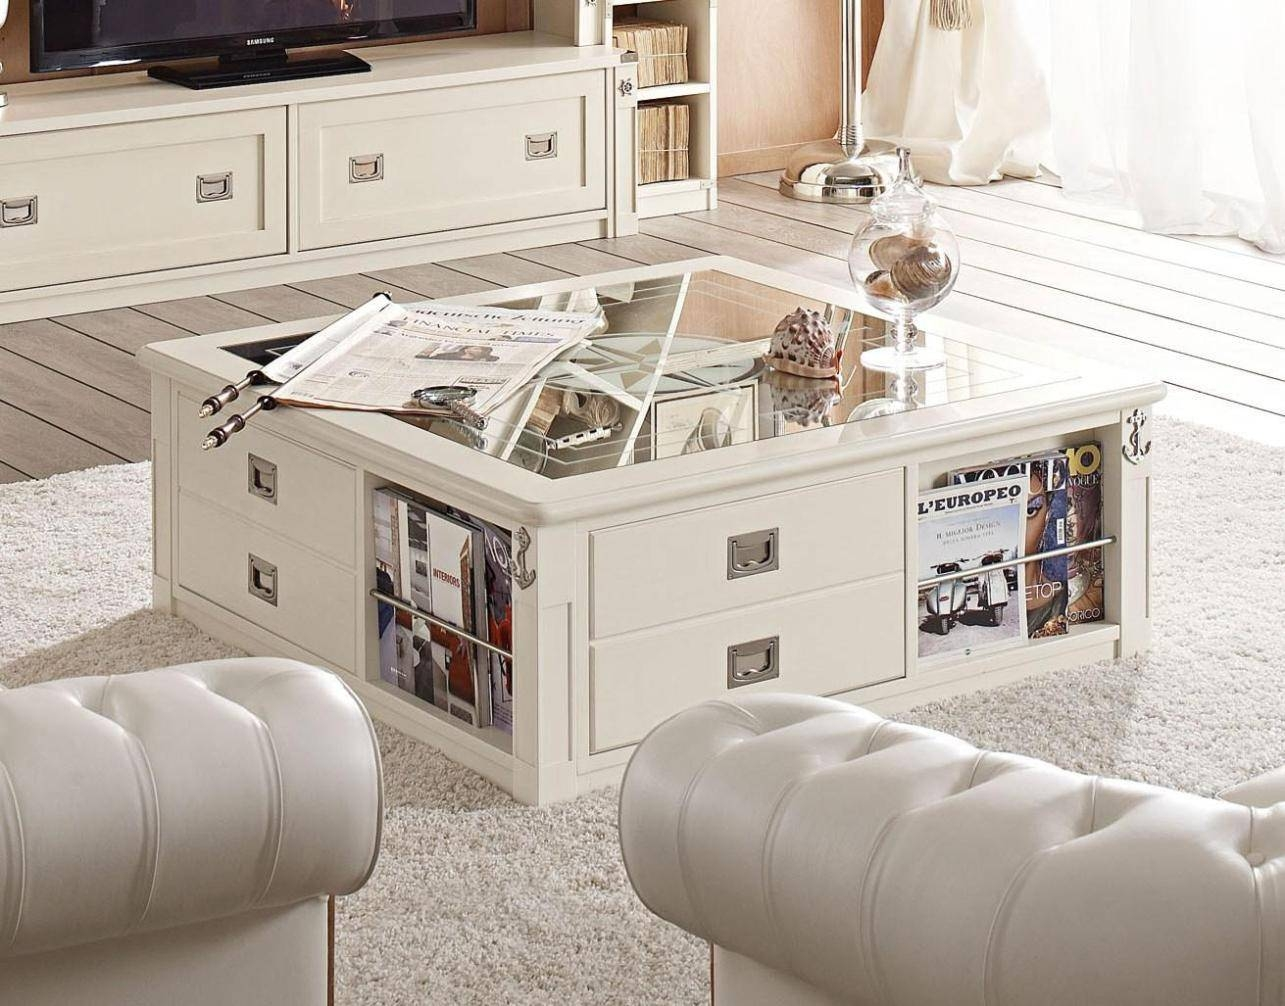 Best Design Square Coffee Table With Storage Bed & Shower Pertaining To Coffee Tables With Magazine Storage (View 6 of 30)